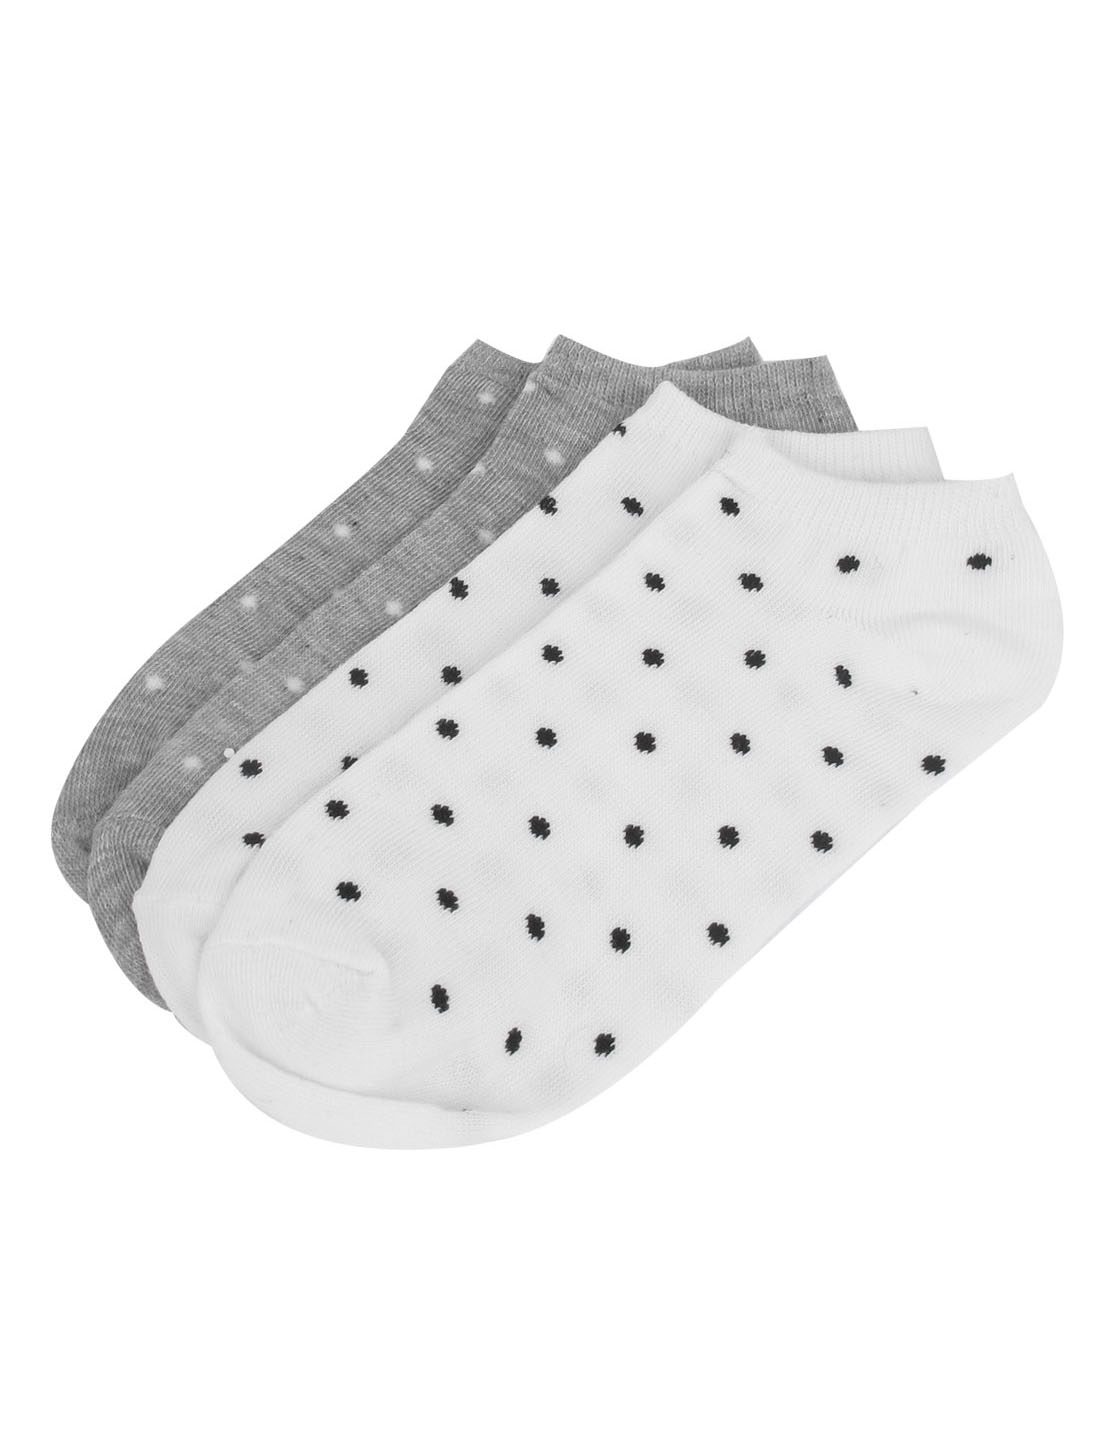 2 Pairs White Black Cotton Blends Elastic Fabric Stretch Cuff Dots Pattern Short Low Cut Ankle Mesh Socks for Ladies Women